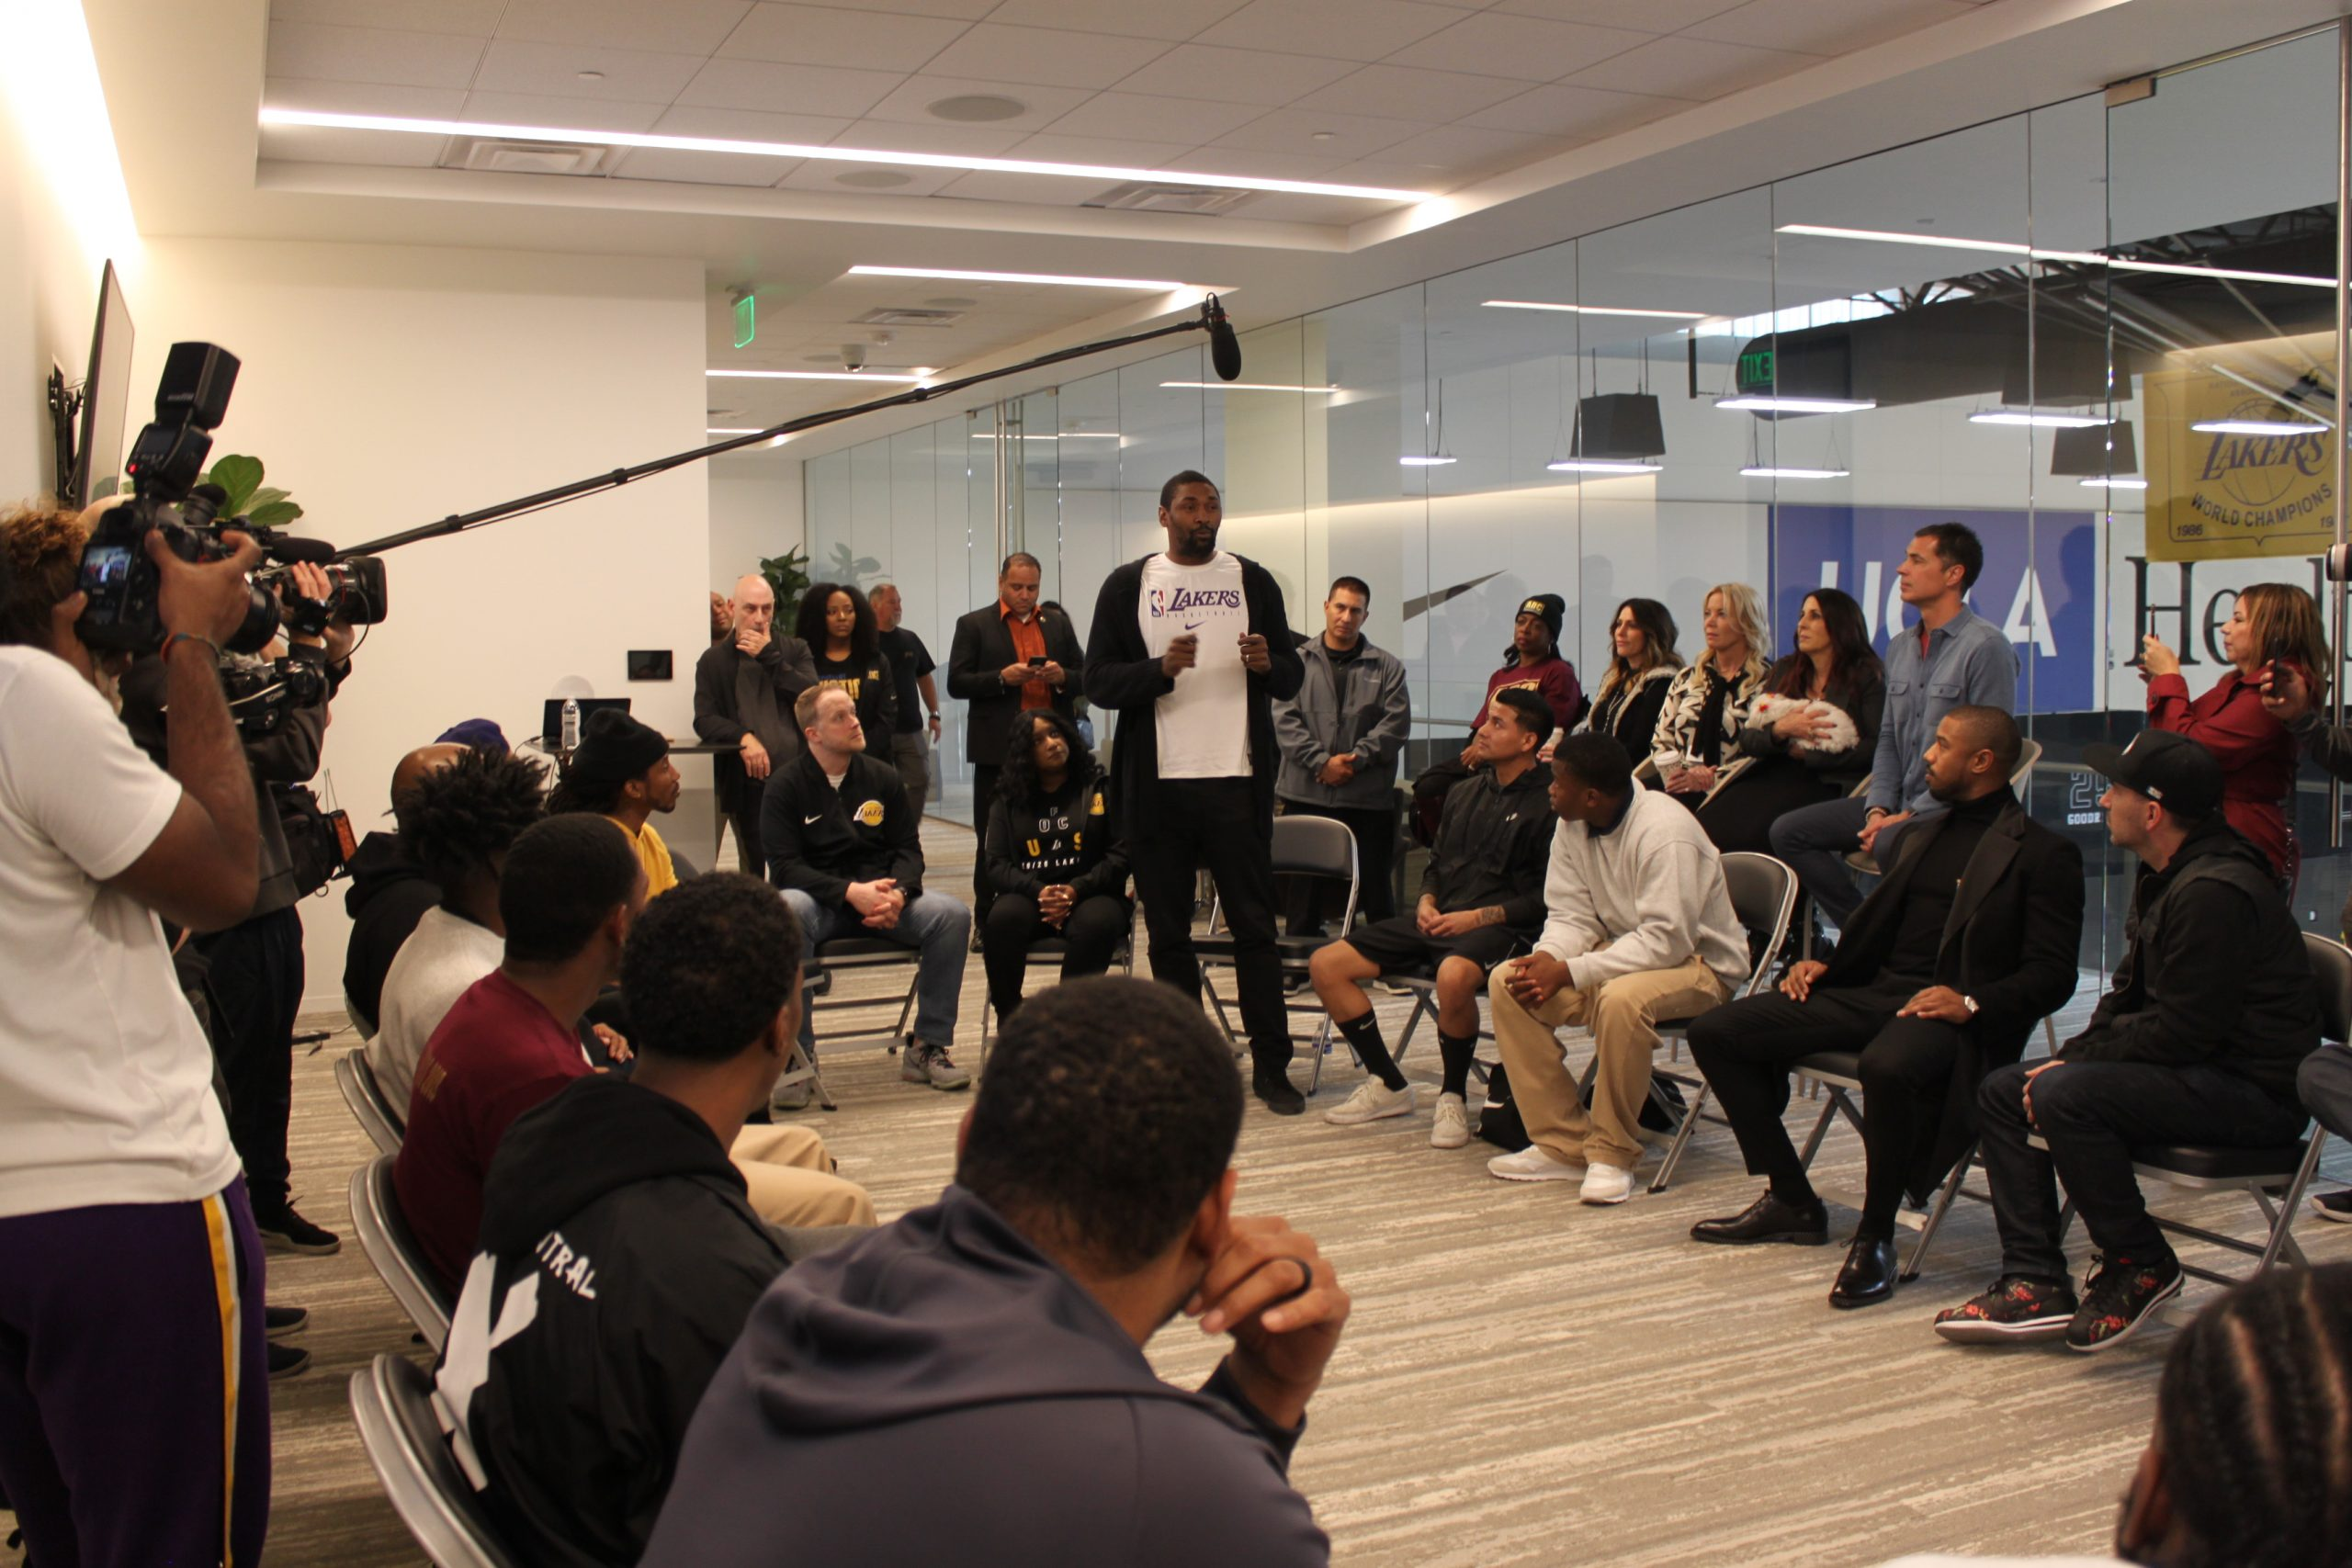 Youth offenders sit in a circle with professional basketball players.